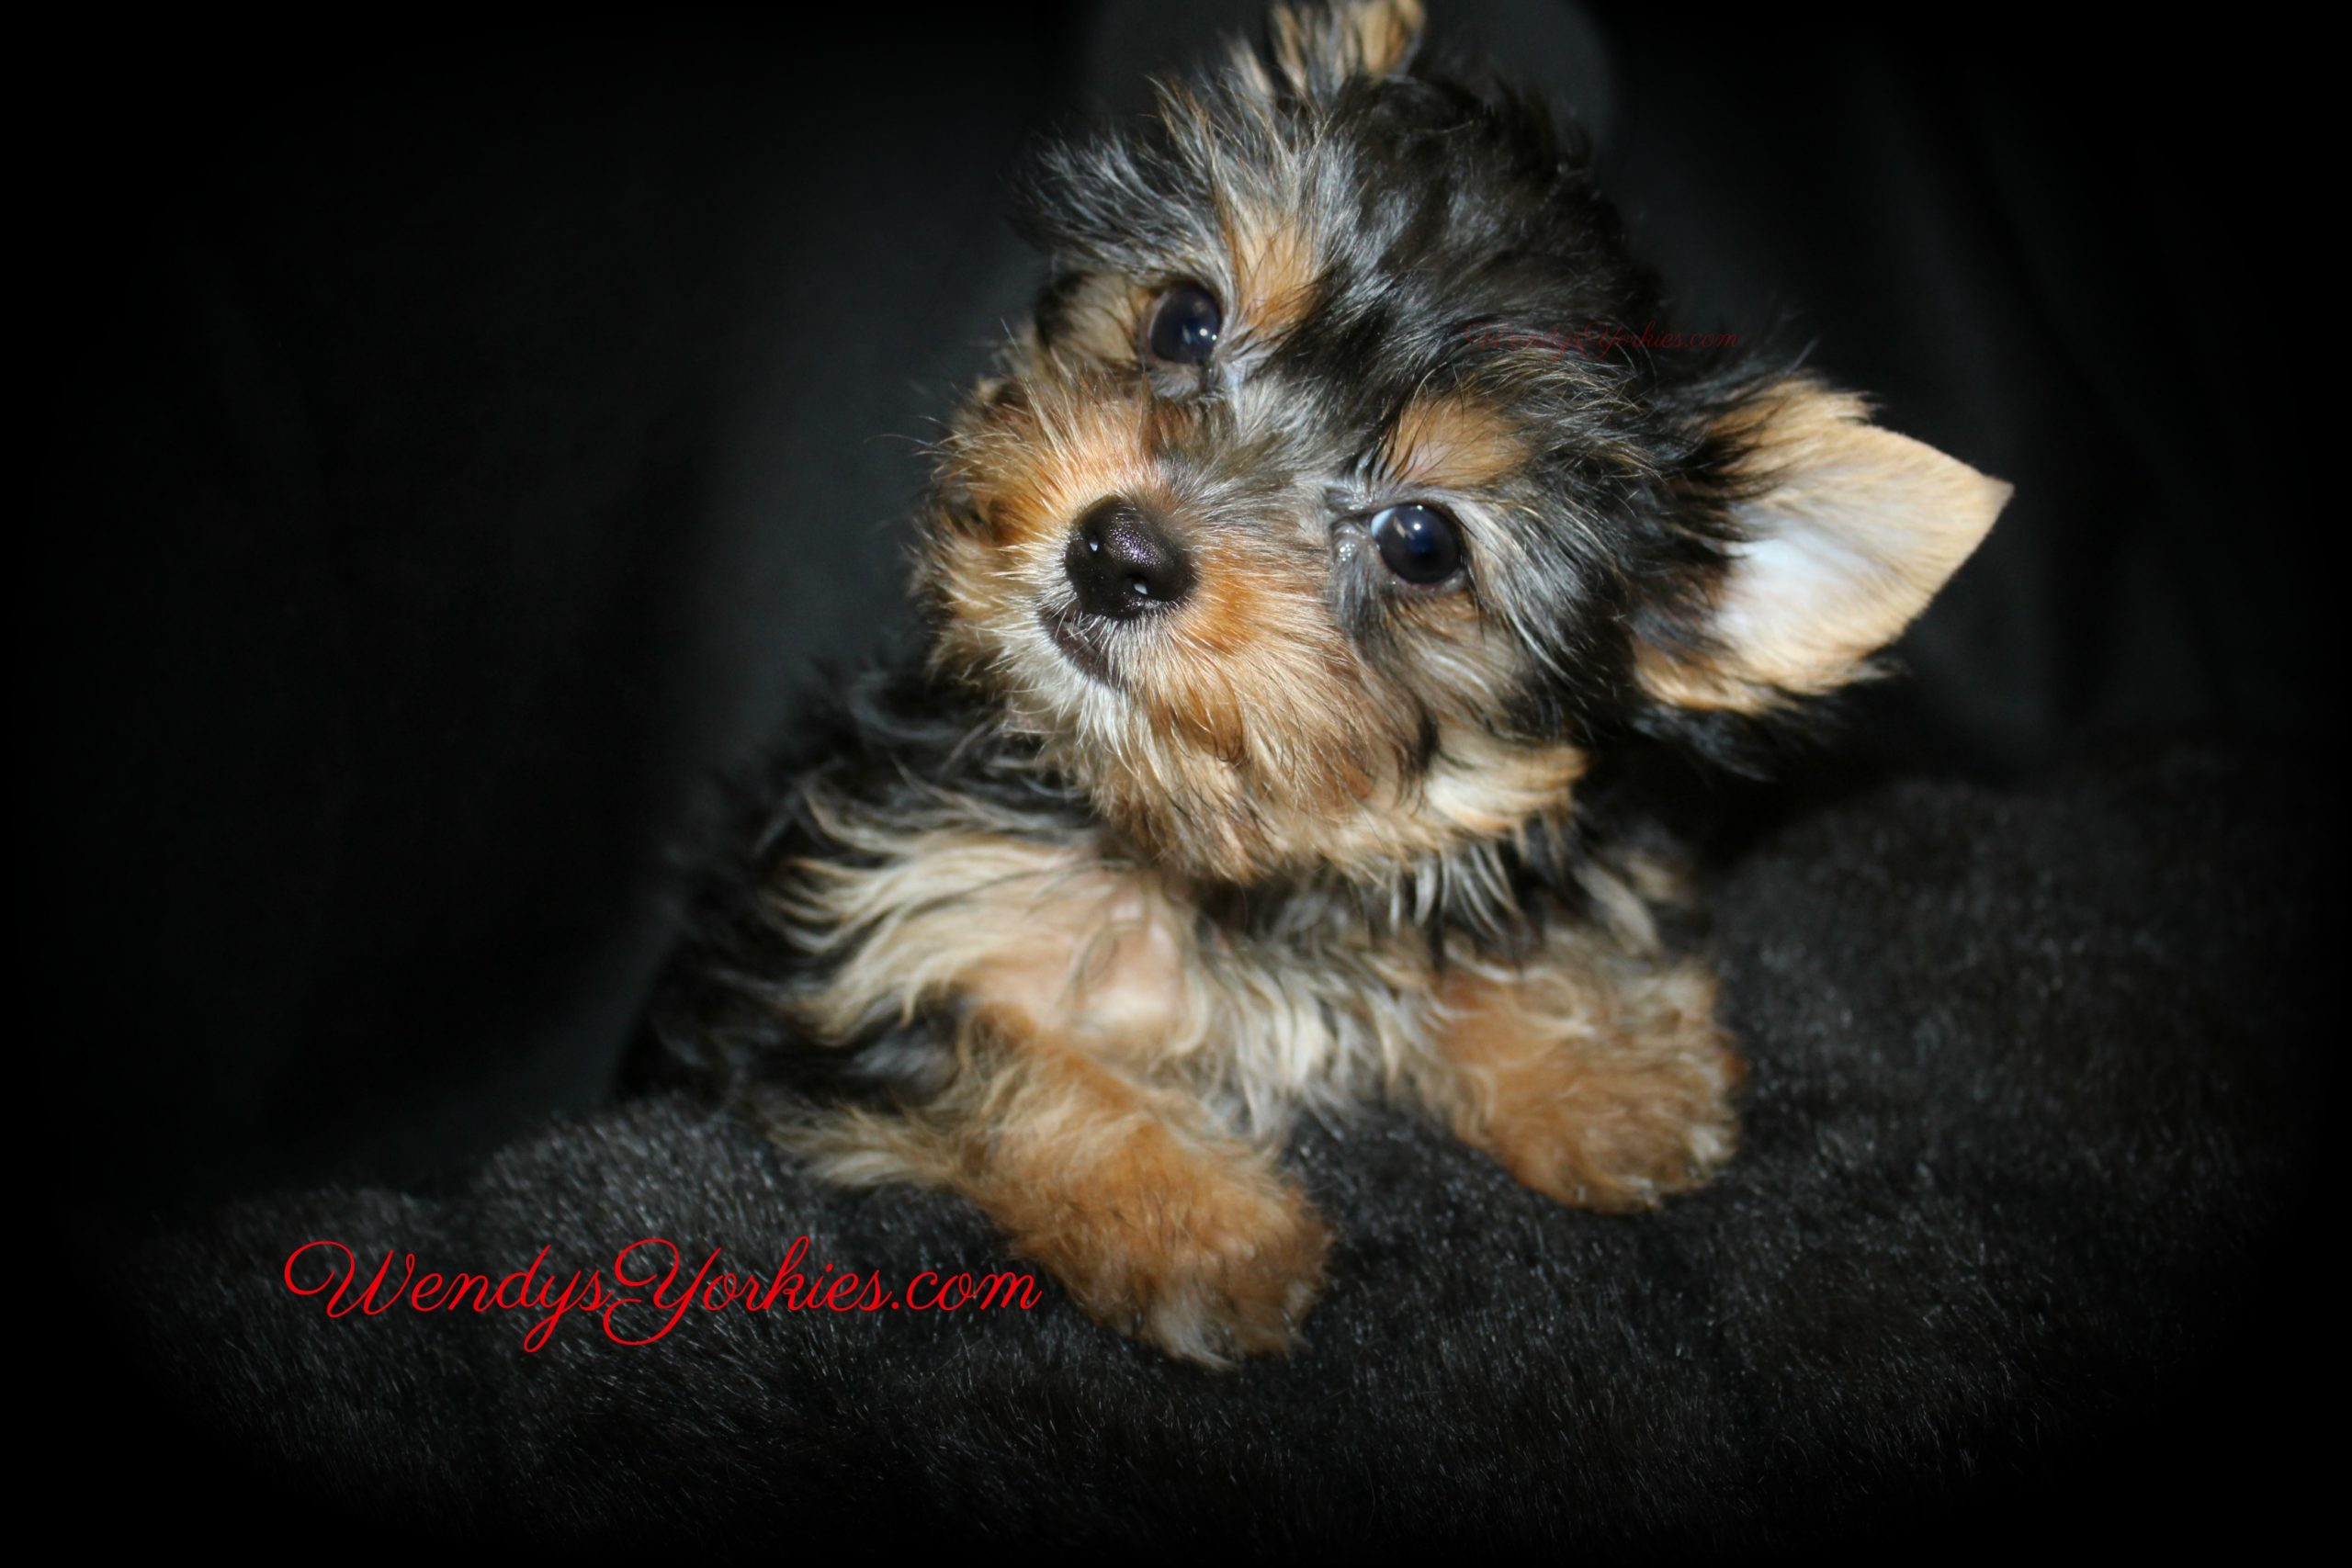 Yorkie puppy for sale, Dutch, WendysYorkies.com